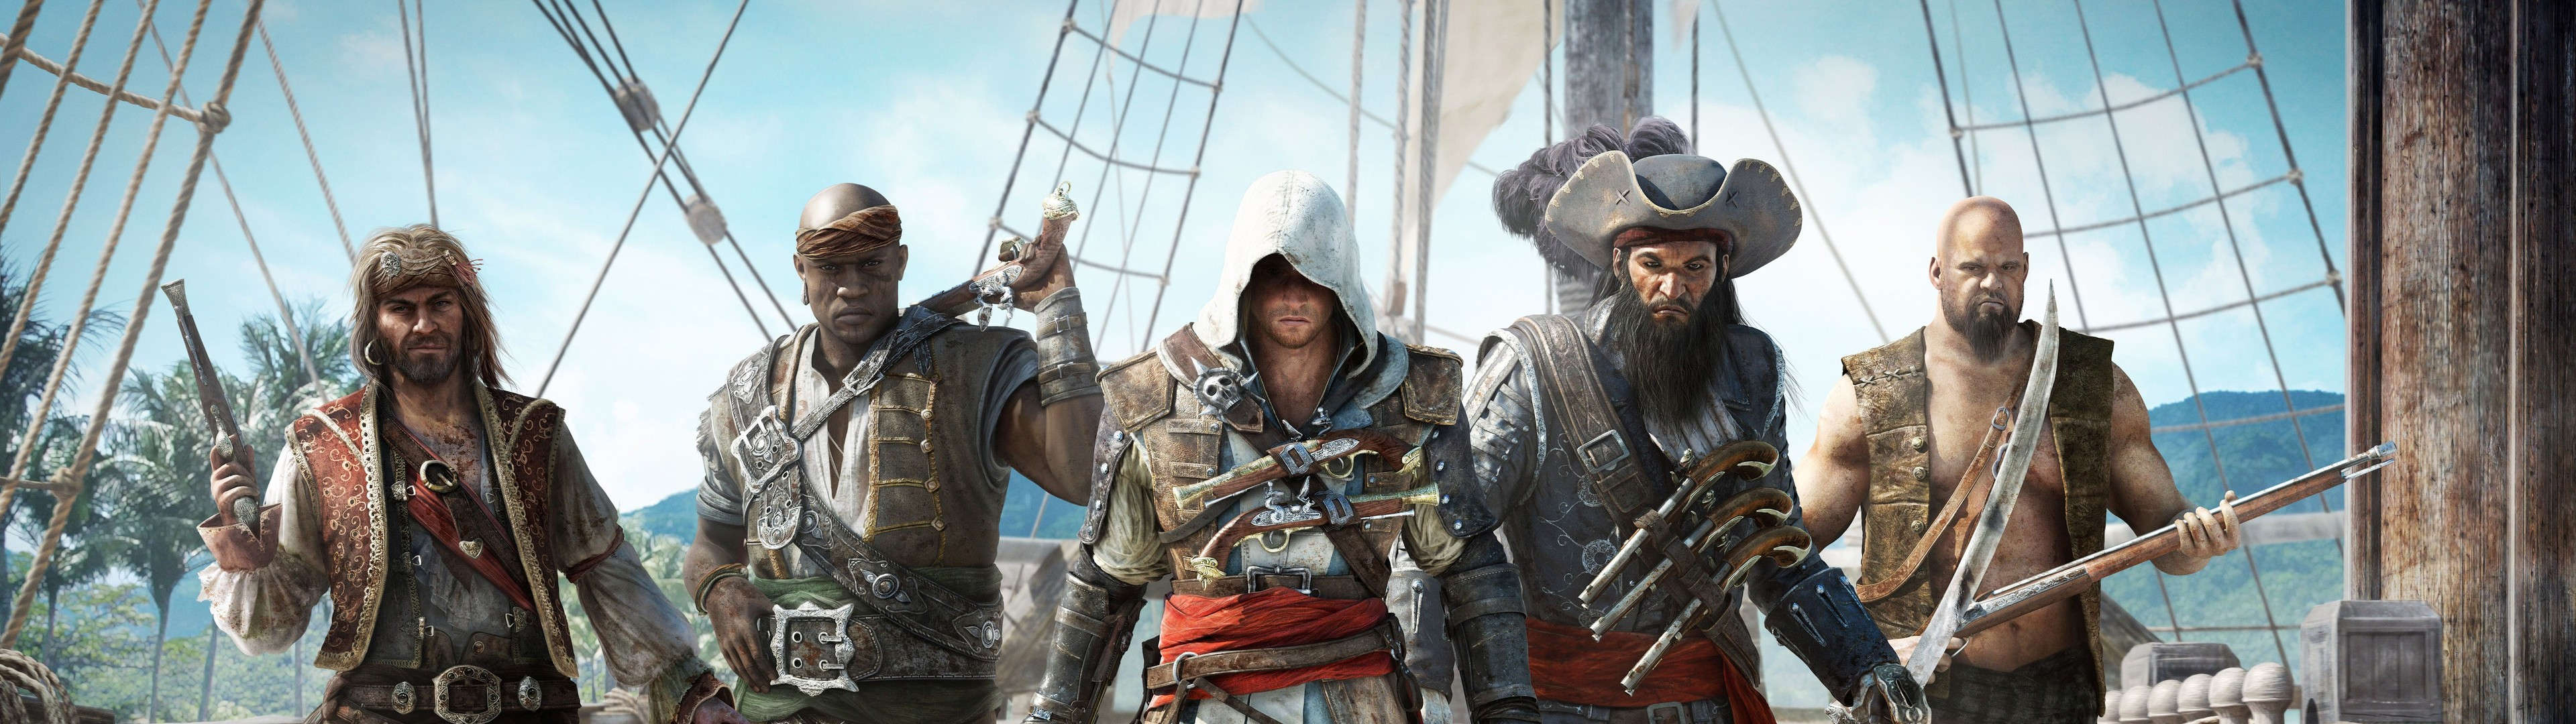 assassins-creed-4-black-flag-.jpg